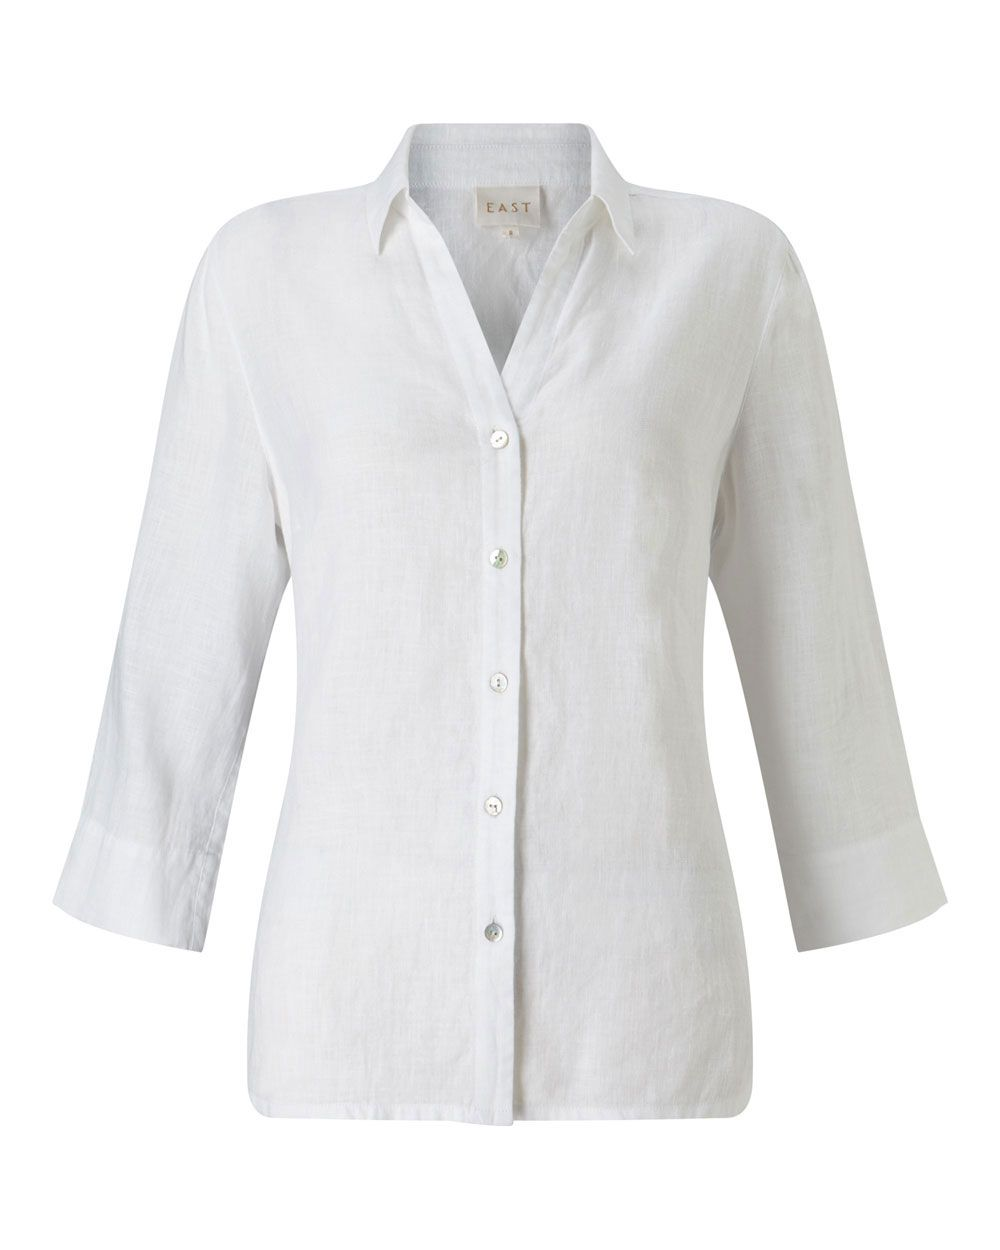 East Linen Shirt, White